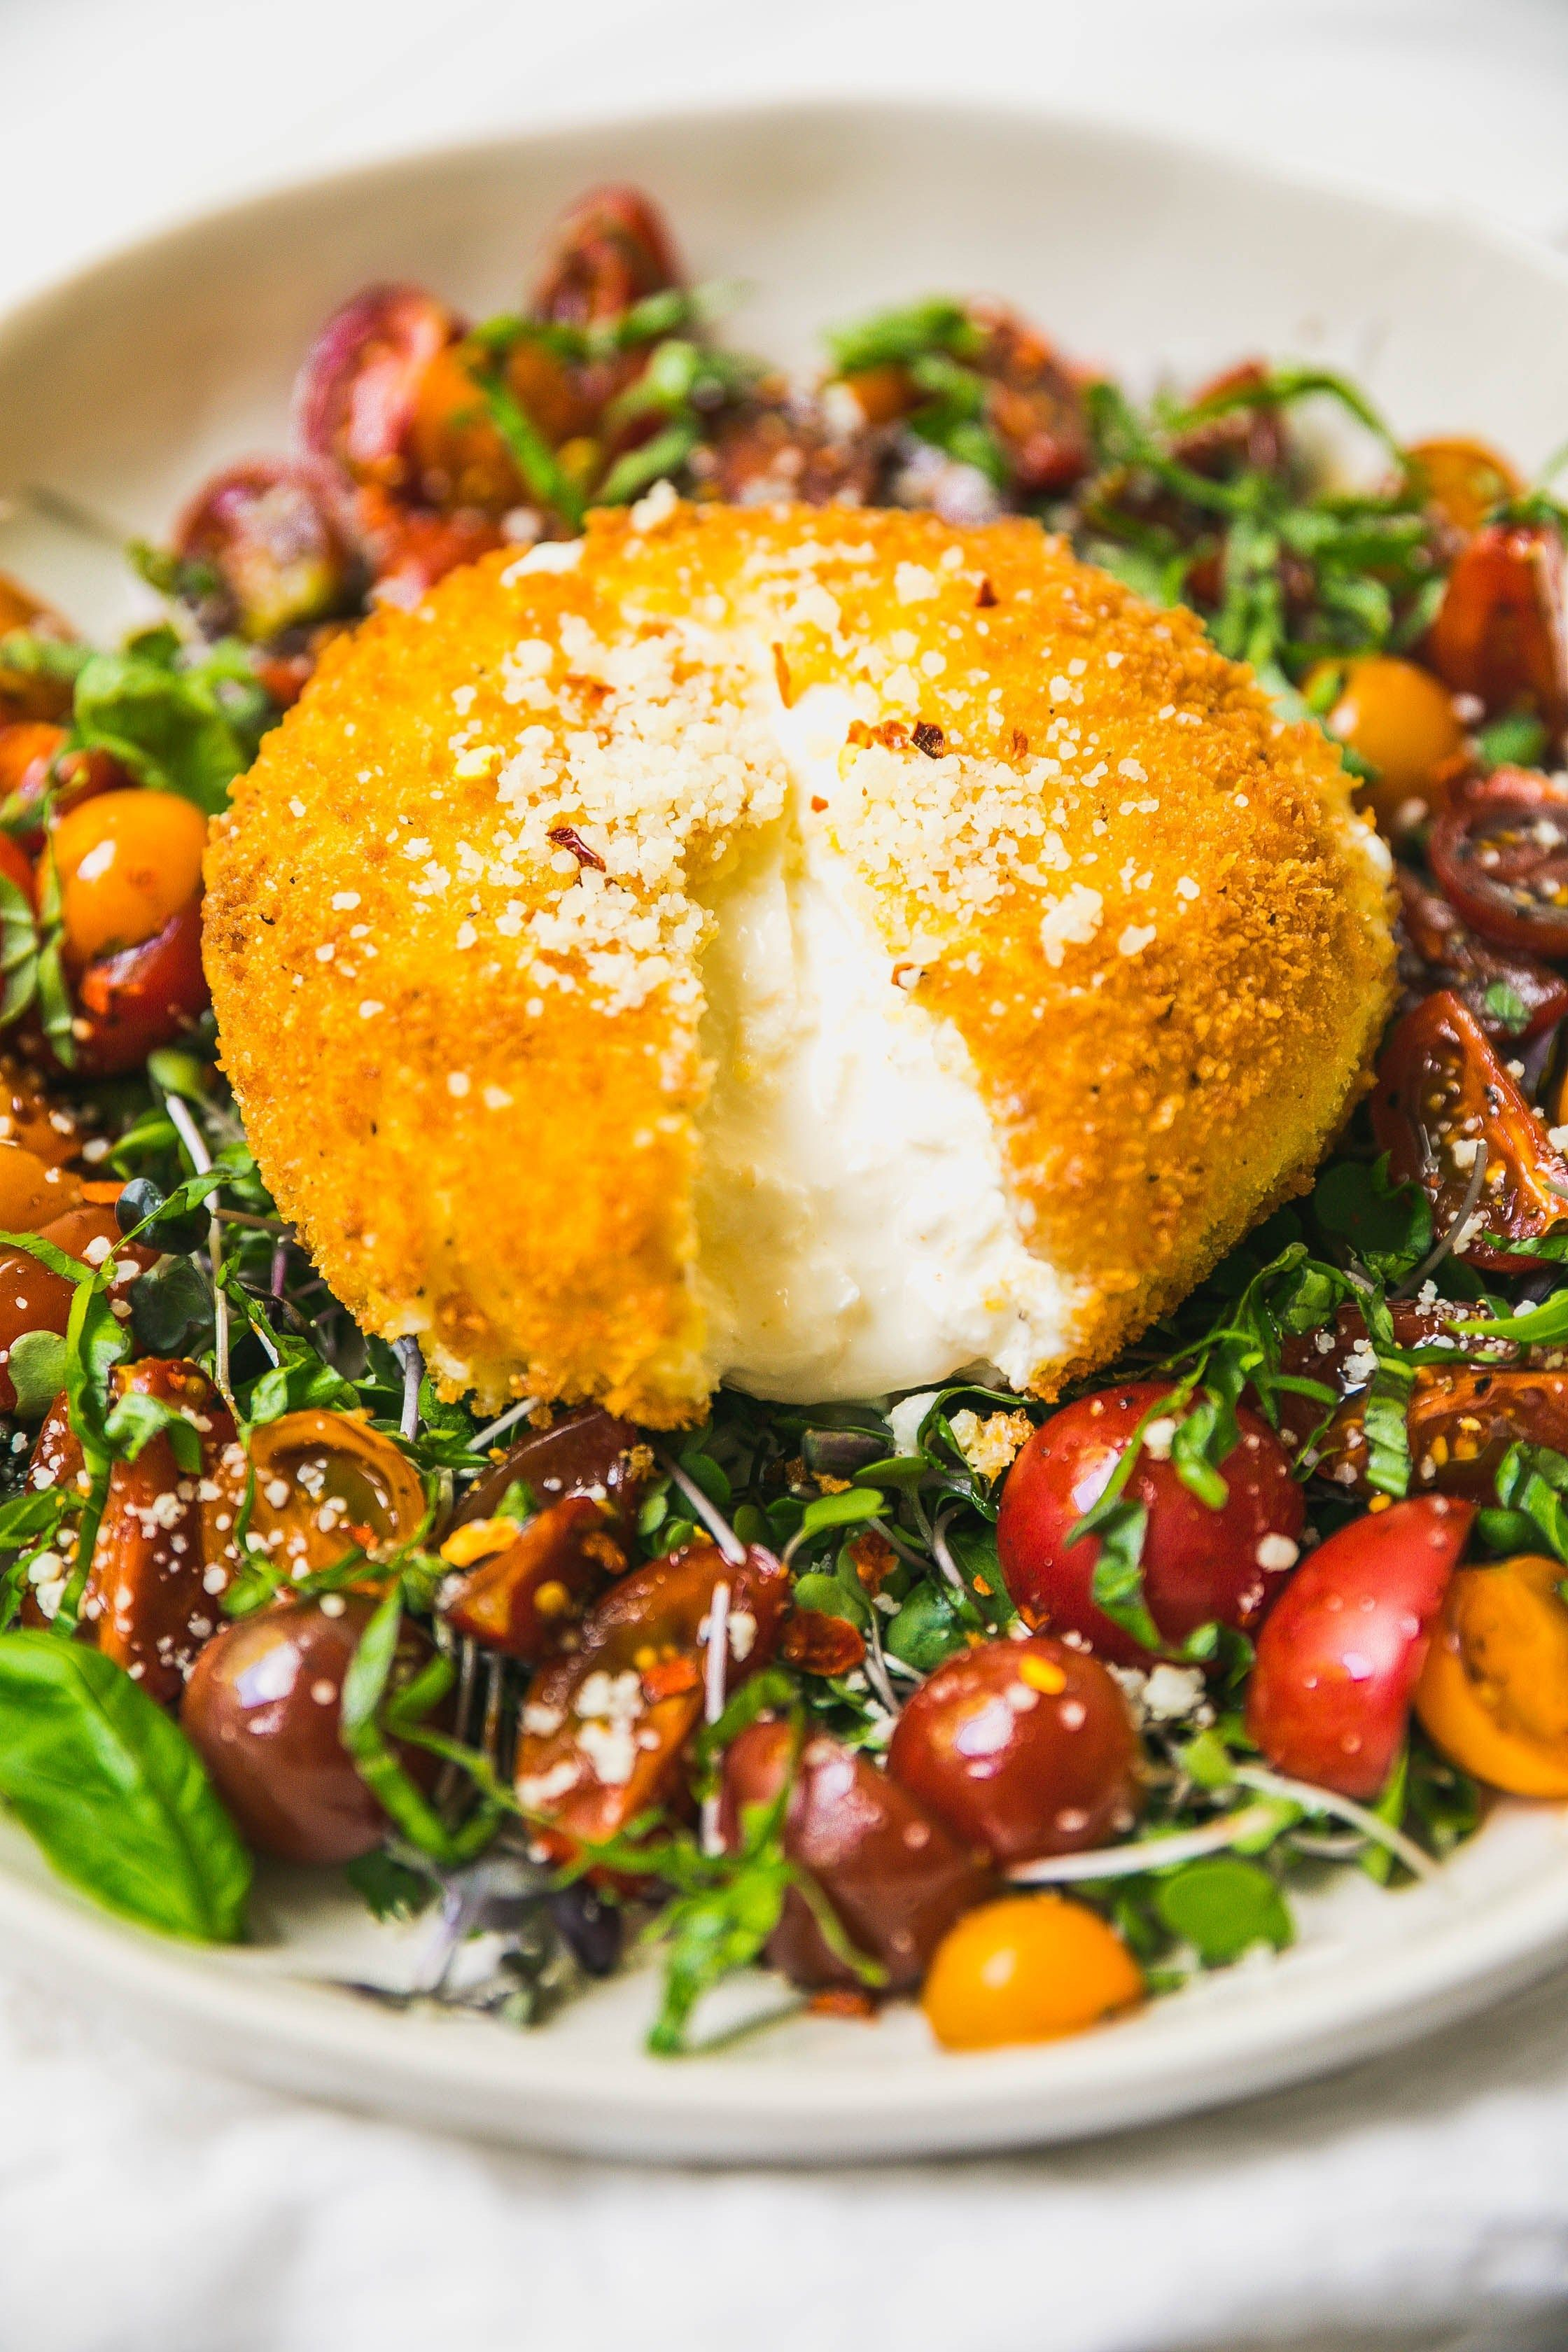 Fried Burrata with Balsamic Marinated Tomatoes